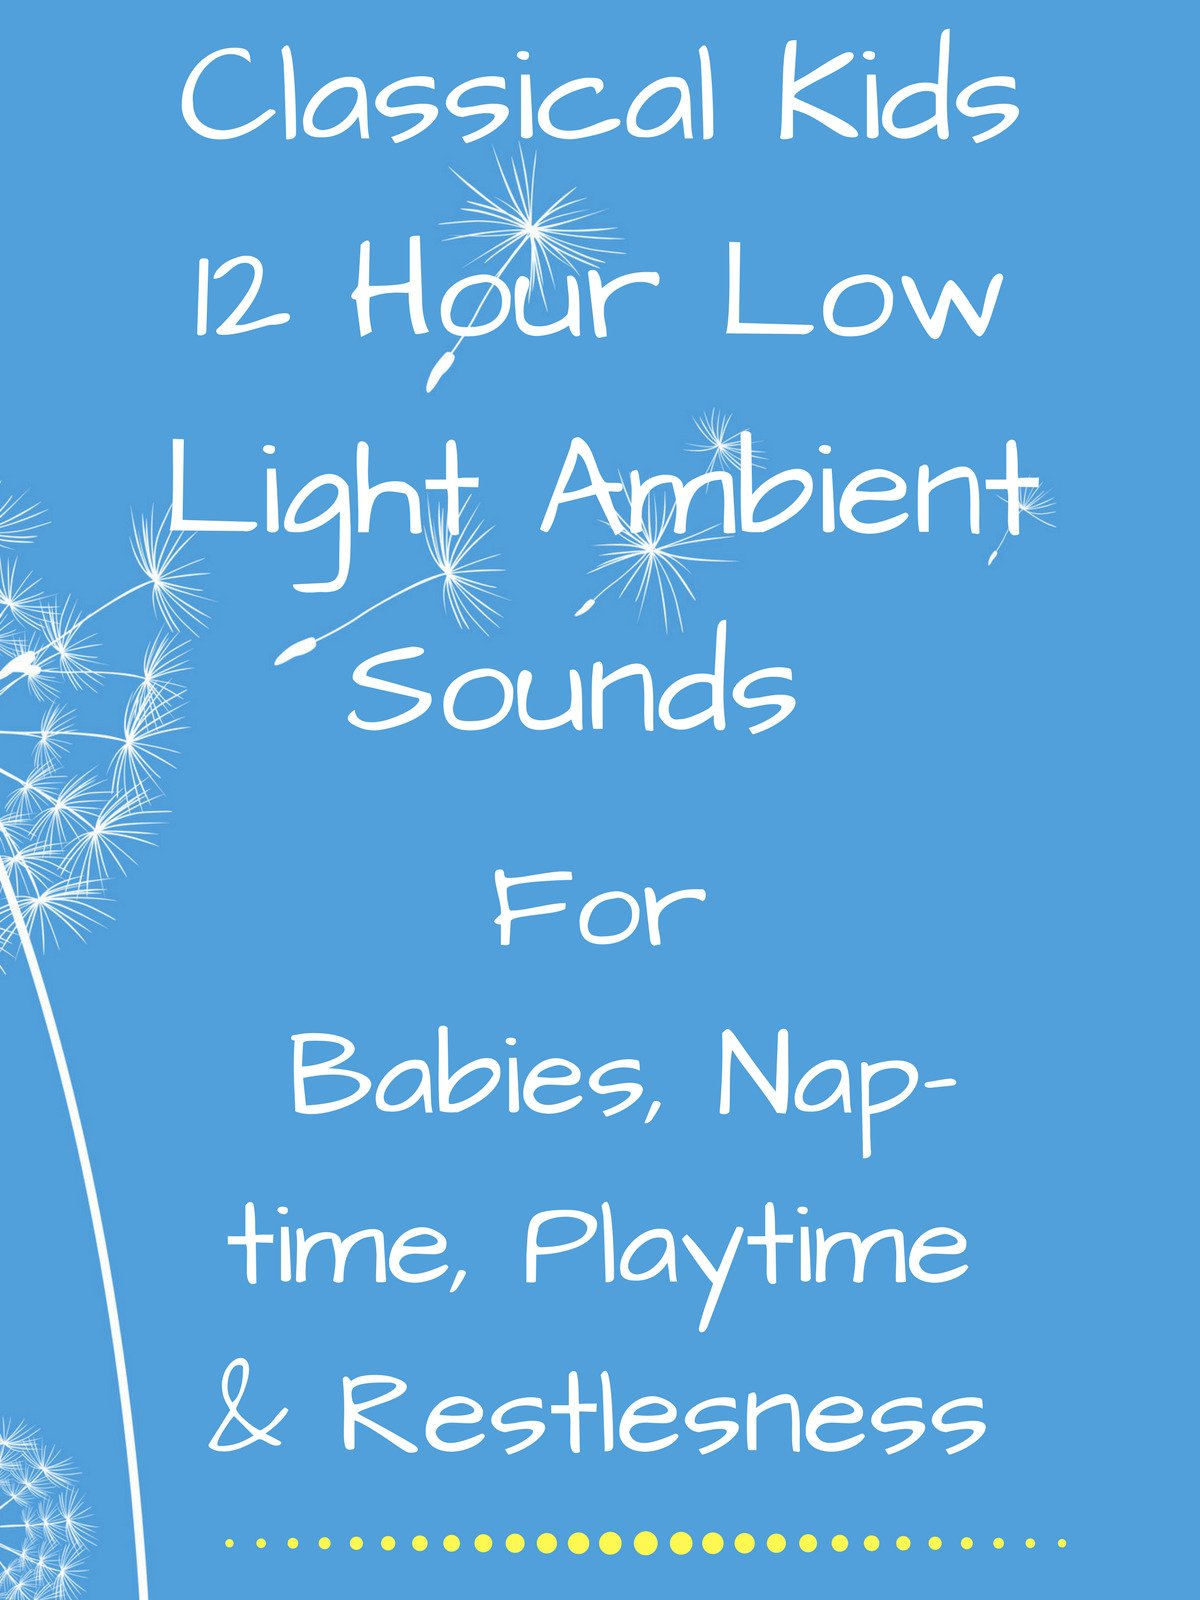 Classical kids 12 hour low light ambient sounds for babies naptime playtime and restlessness